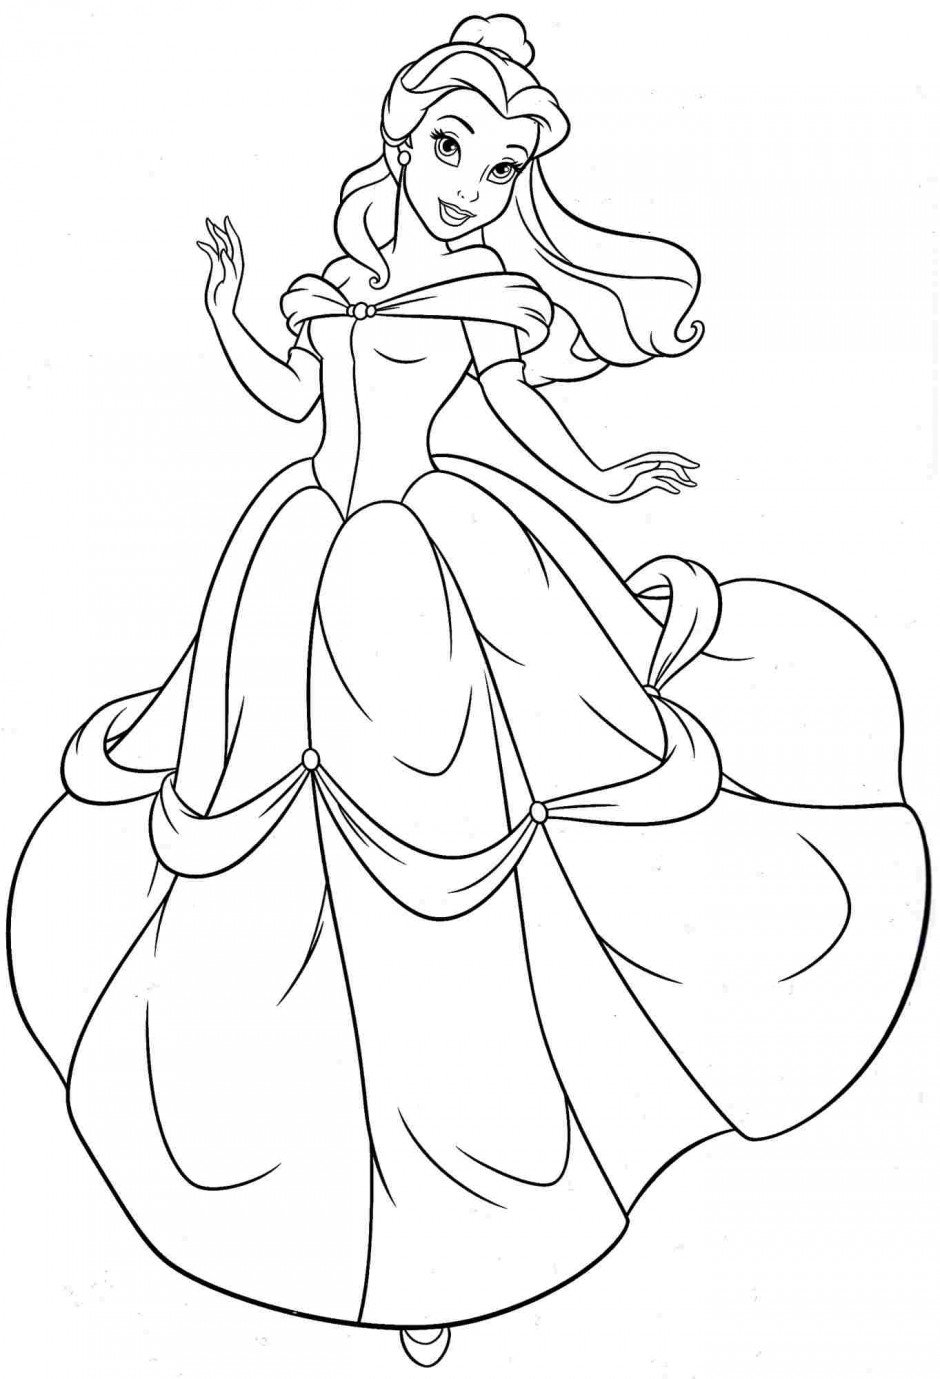 printable colouring pages for girls moxie coloring pages free printable moxie coloring pages girls colouring for pages printable